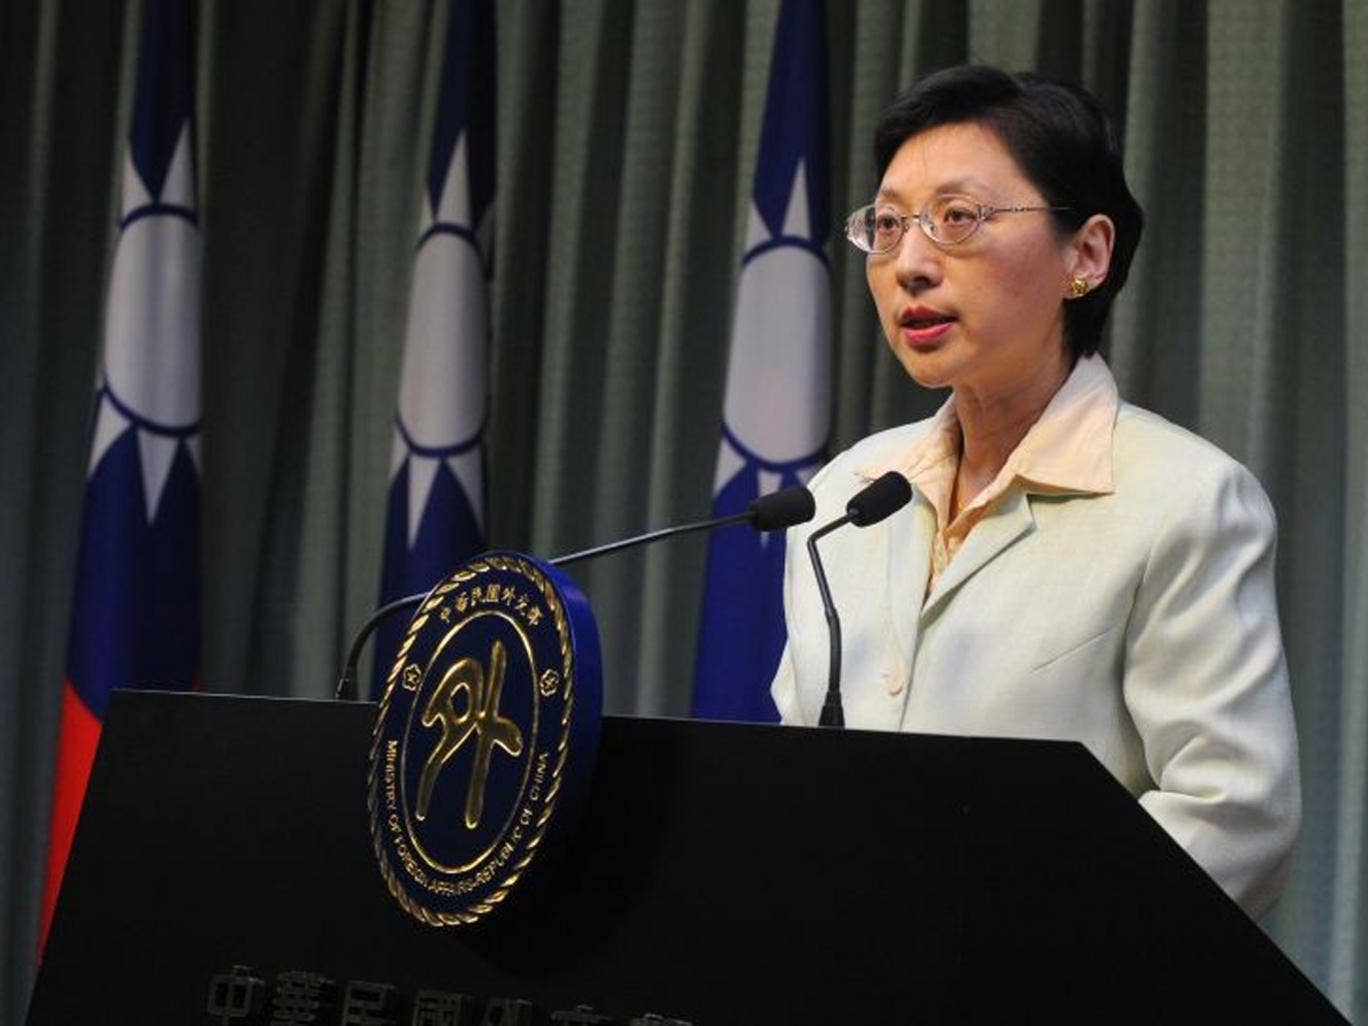 Taiwan's Foreign Affairs Ministry spokeswoman Anna Kao speaks during a press conference in Taipei saying she had refused to see Philippine special envoy Amadeo Perez in regards to Philippine coastguards shooting dead a 65-year-old fisherman last week afte